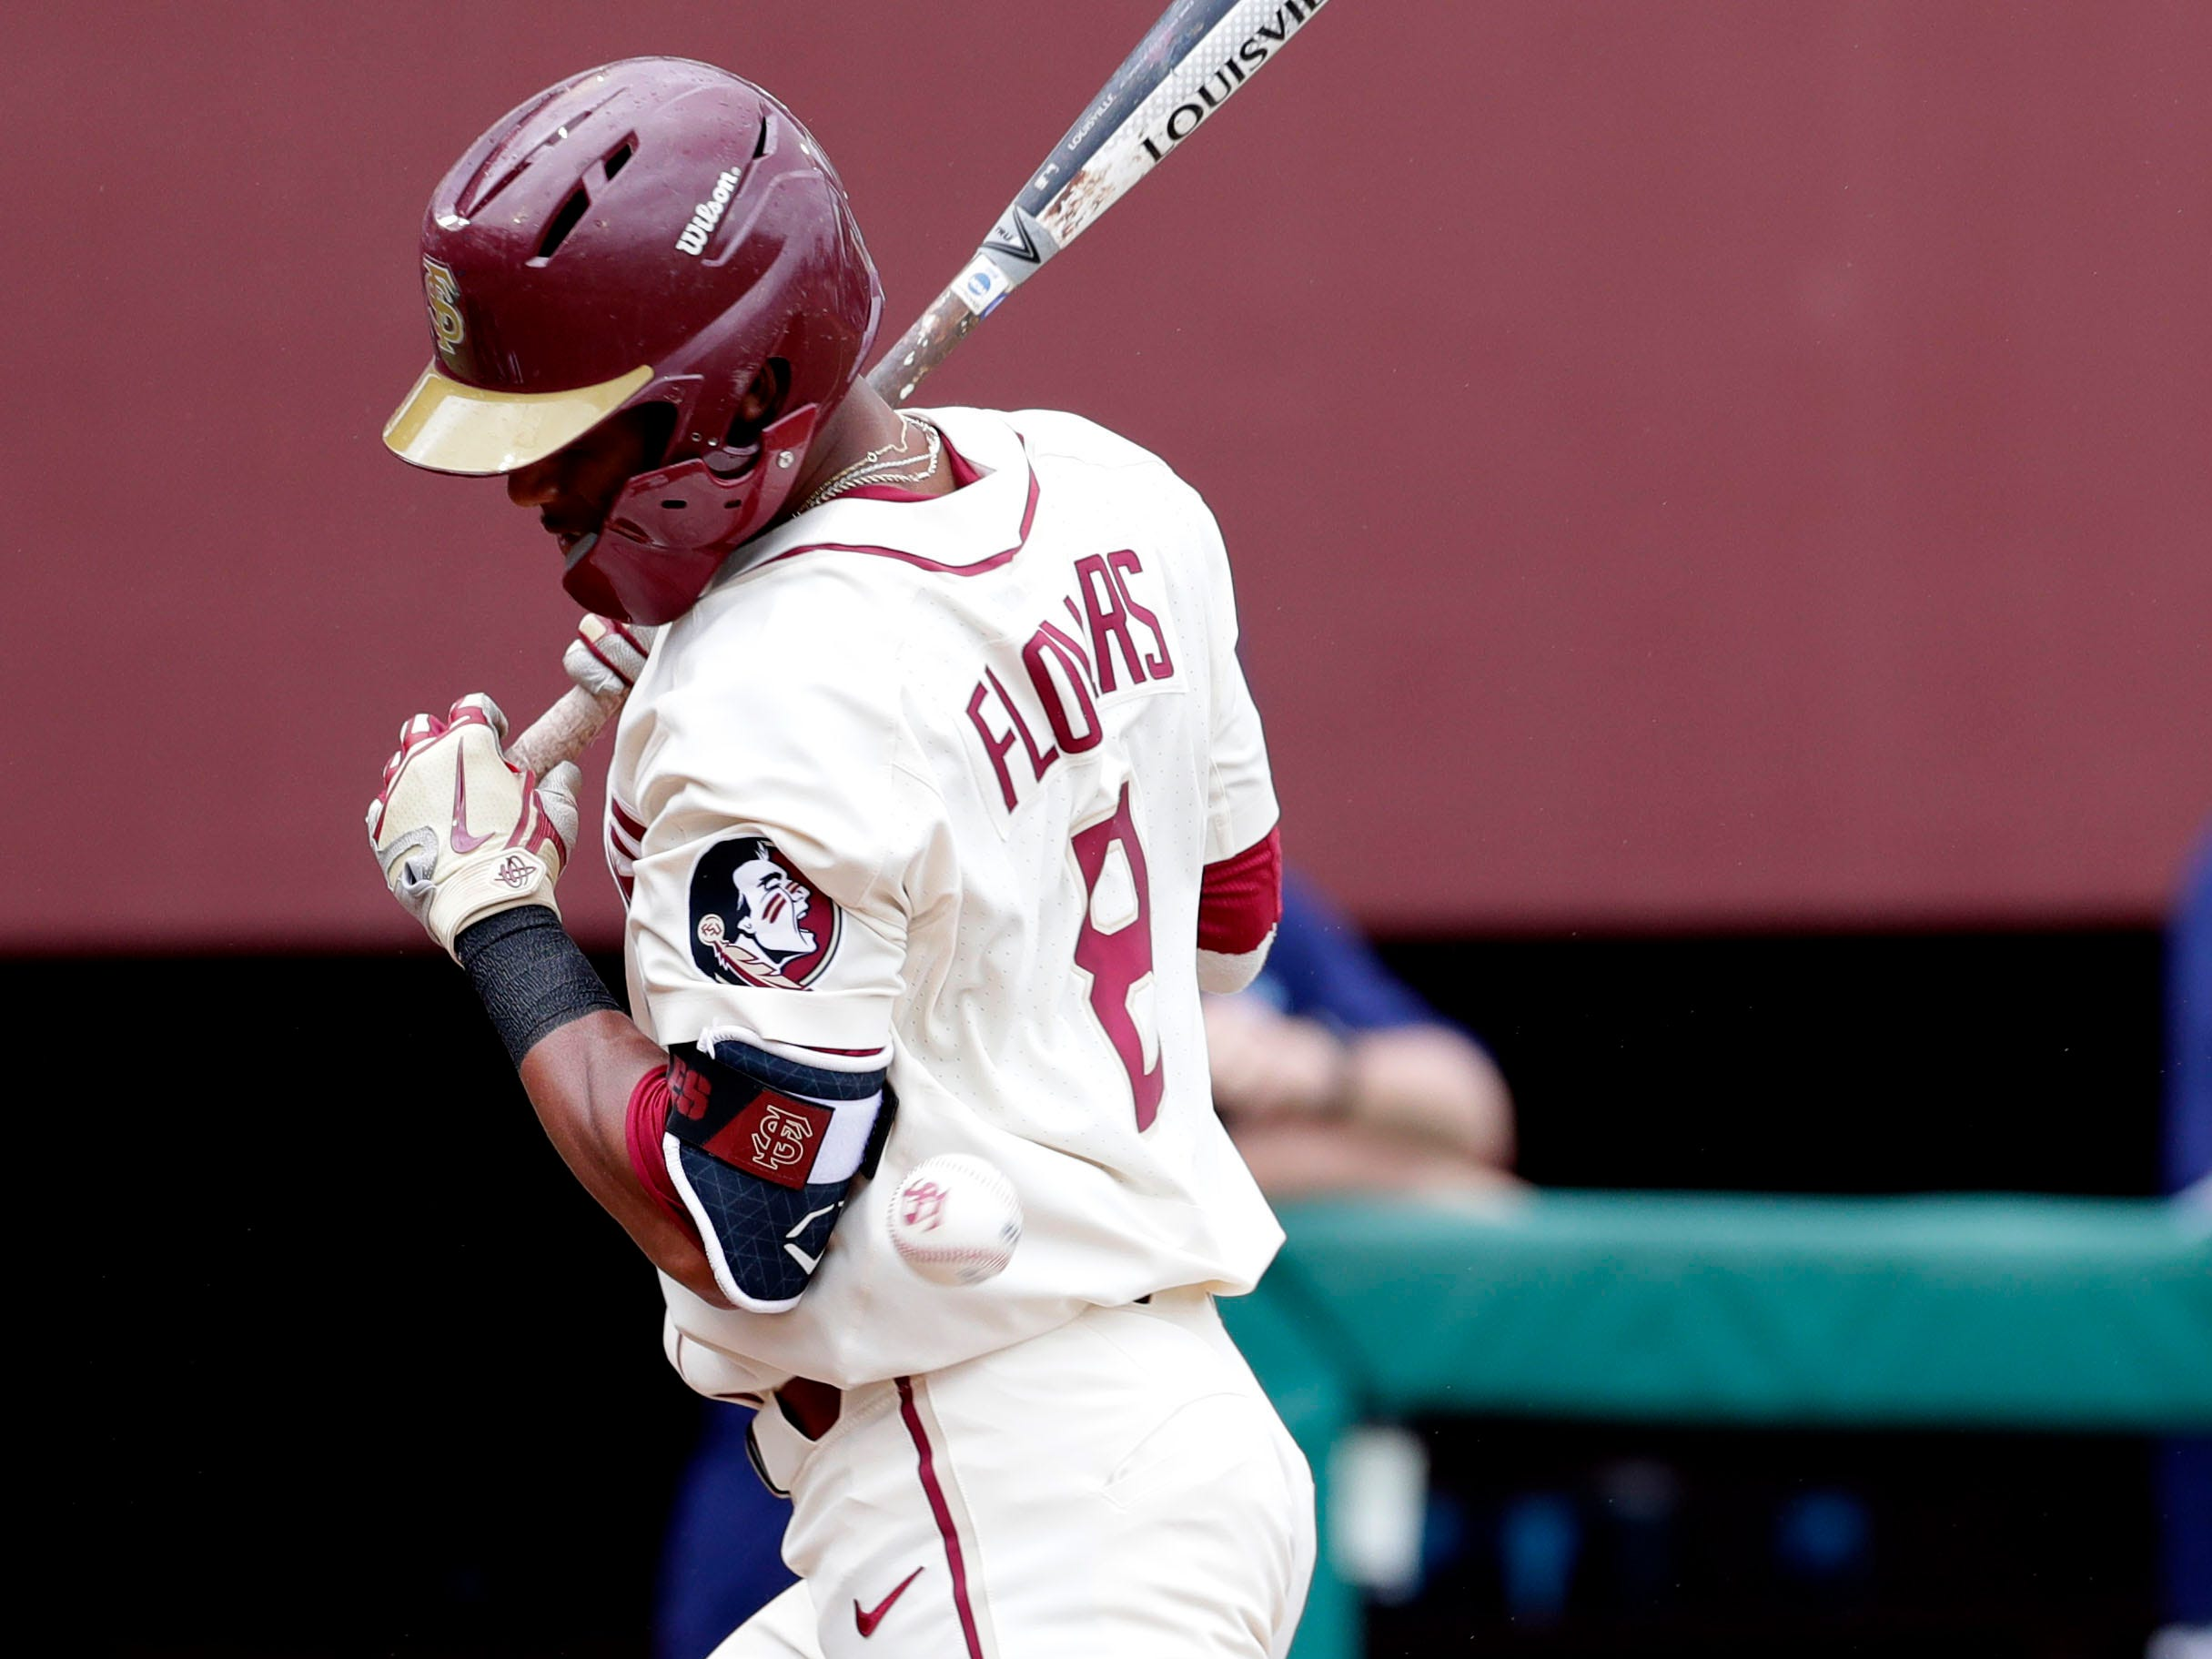 Florida State Seminoles outfielder/right handed pitcher J.C. Flowers (8) gets hit on the arm by the pitch as the Florida State Seminoles host the Maine Black Bears for the second game of the series, Saturday Feb. 16, 2019.